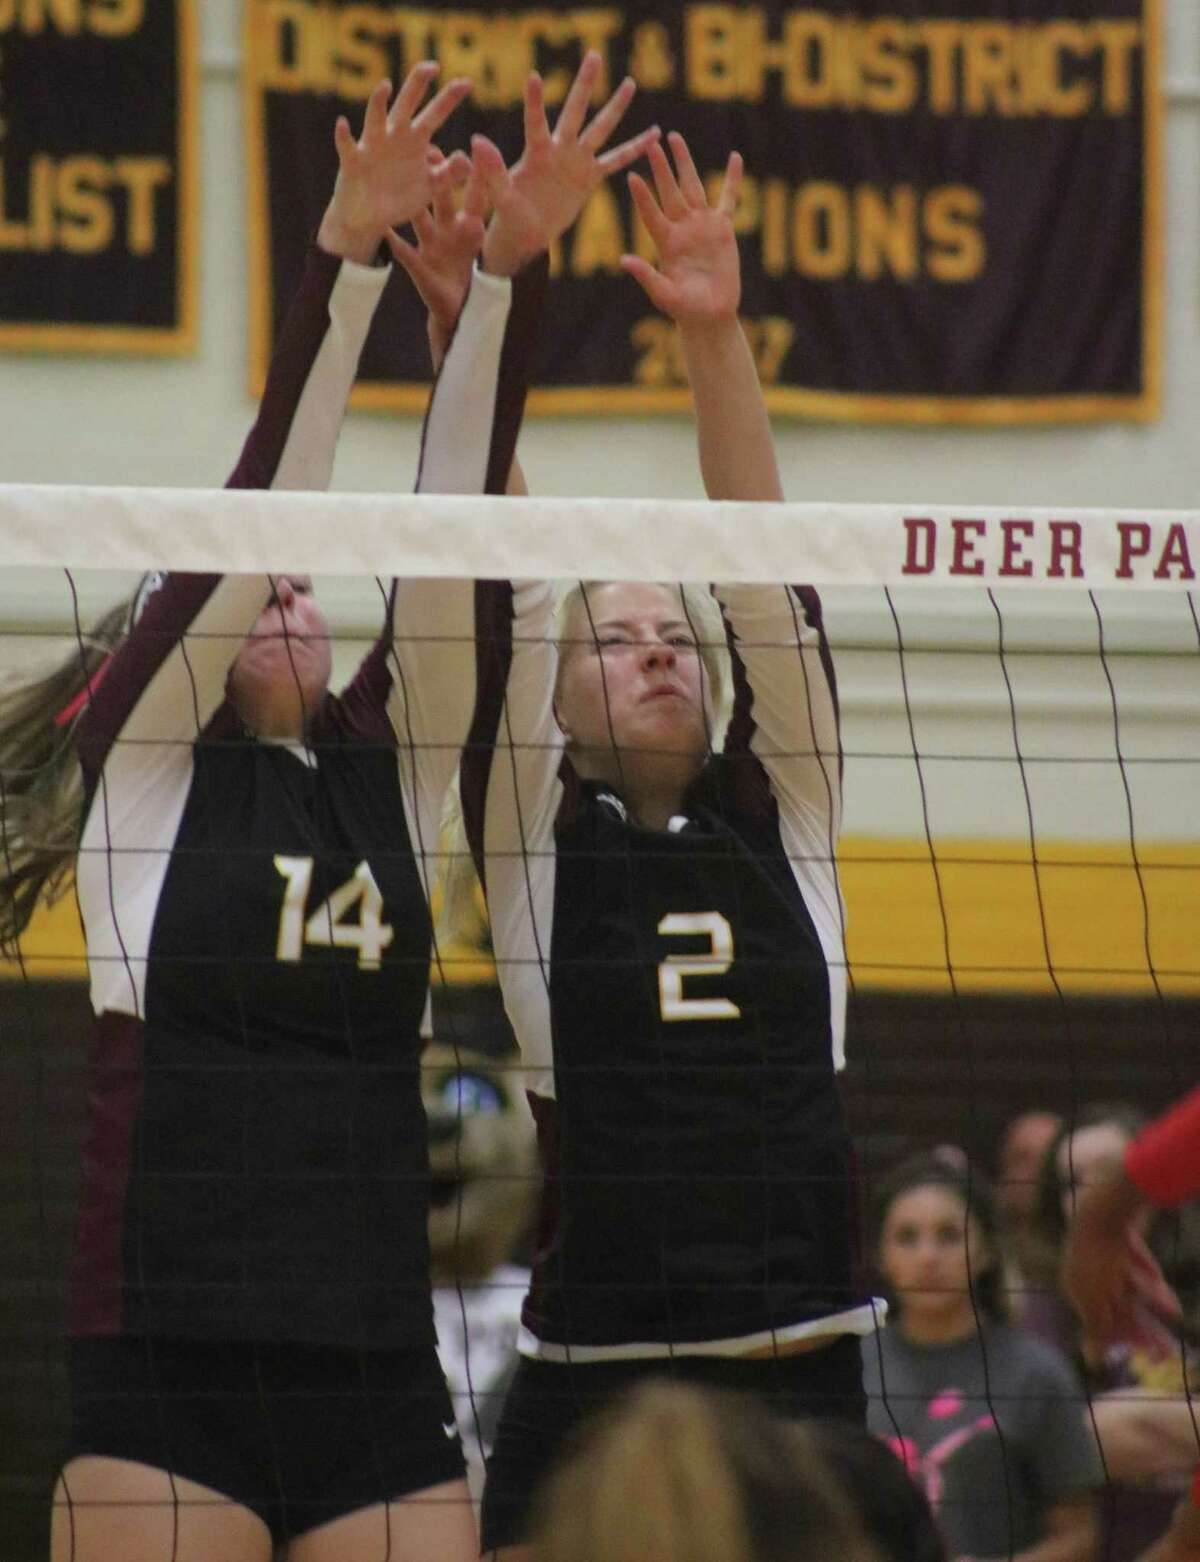 McKenzie Morvant (14) and Phoebe Stigen vie for a block during a match last season. The two are expected to be two of head coach Cortni Cox's numerous returners this season. The team travels to Clear Falls Saturday for a series of scrimmages.